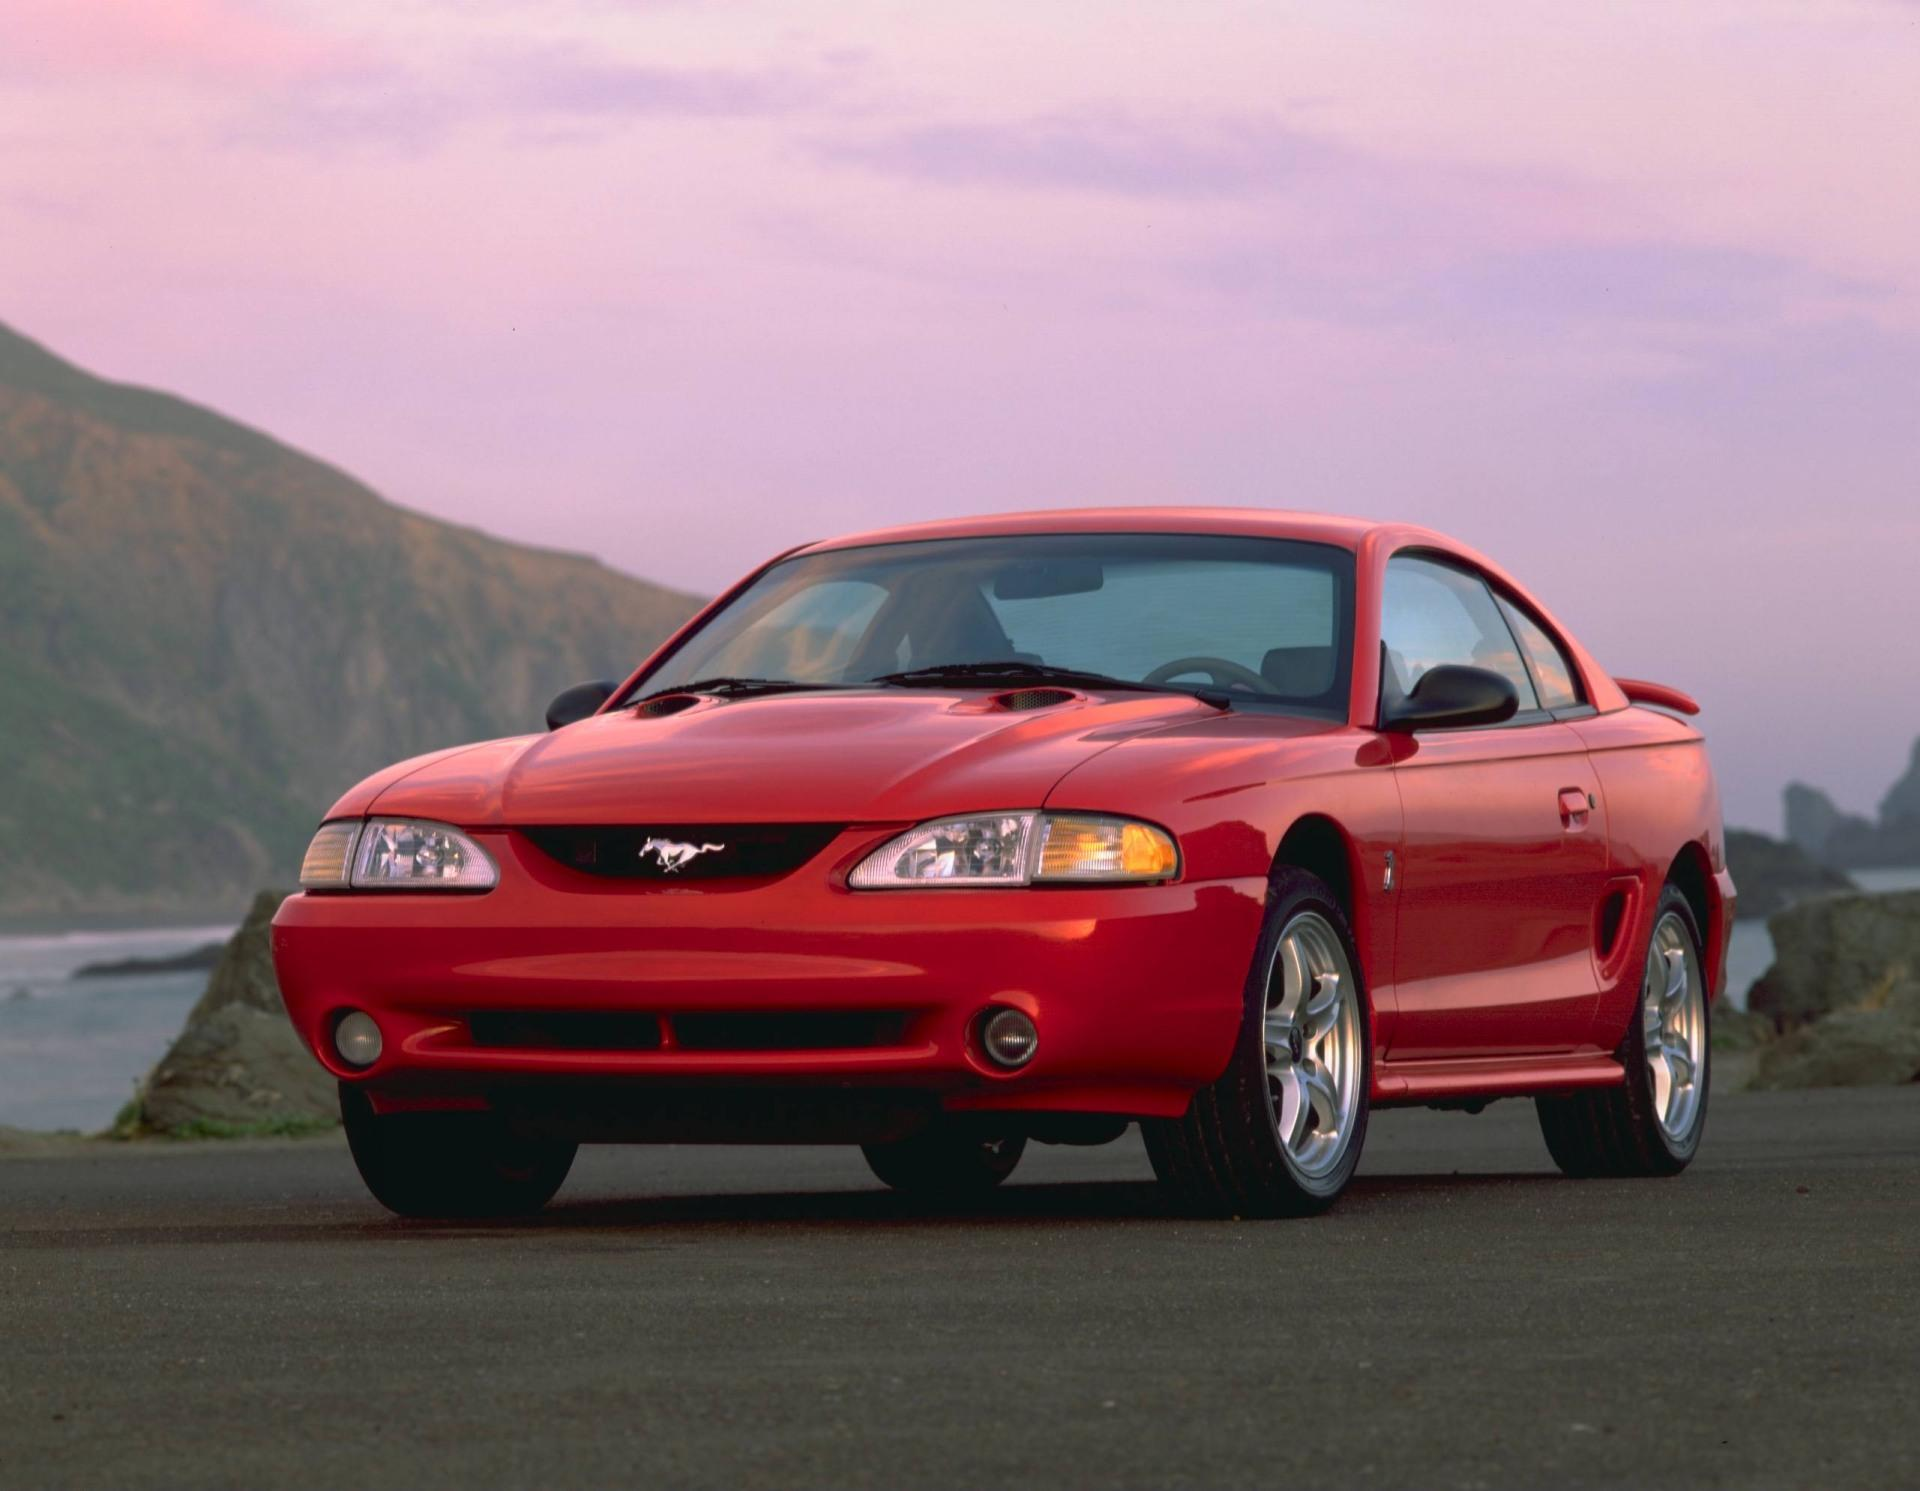 1998 ford mustang pictures history value research news conceptcarz com